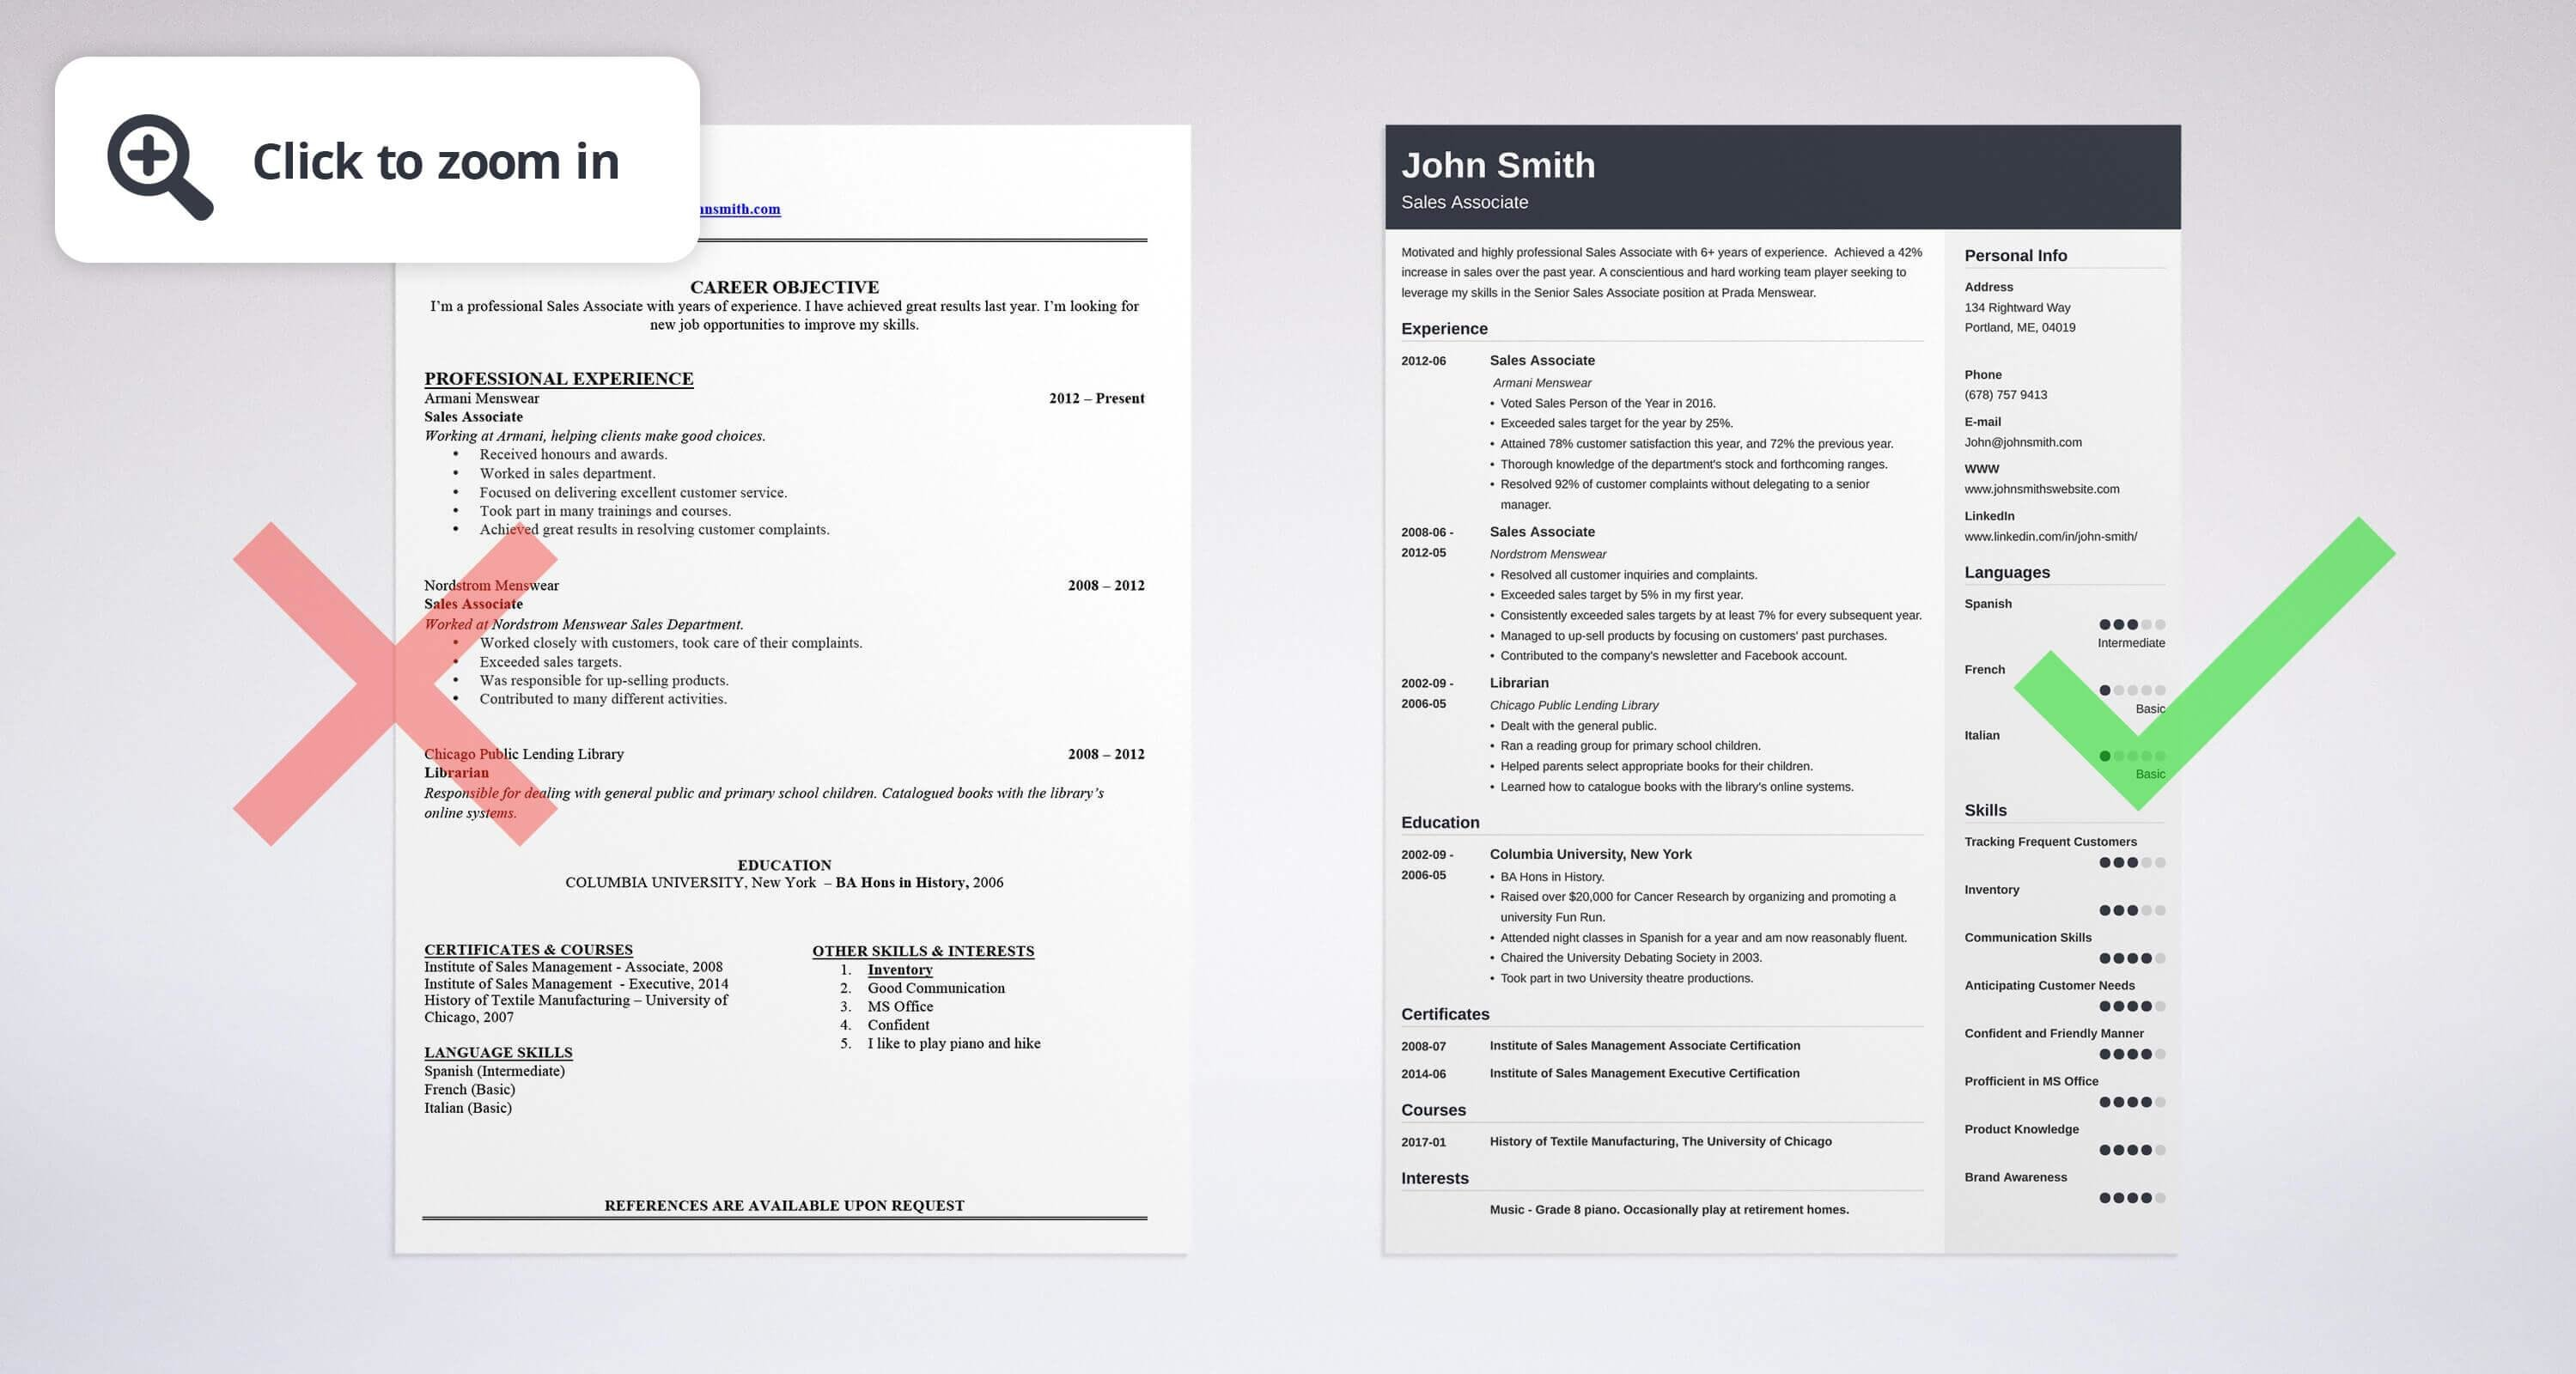 Lovely Uptowork For Skills For A Resume